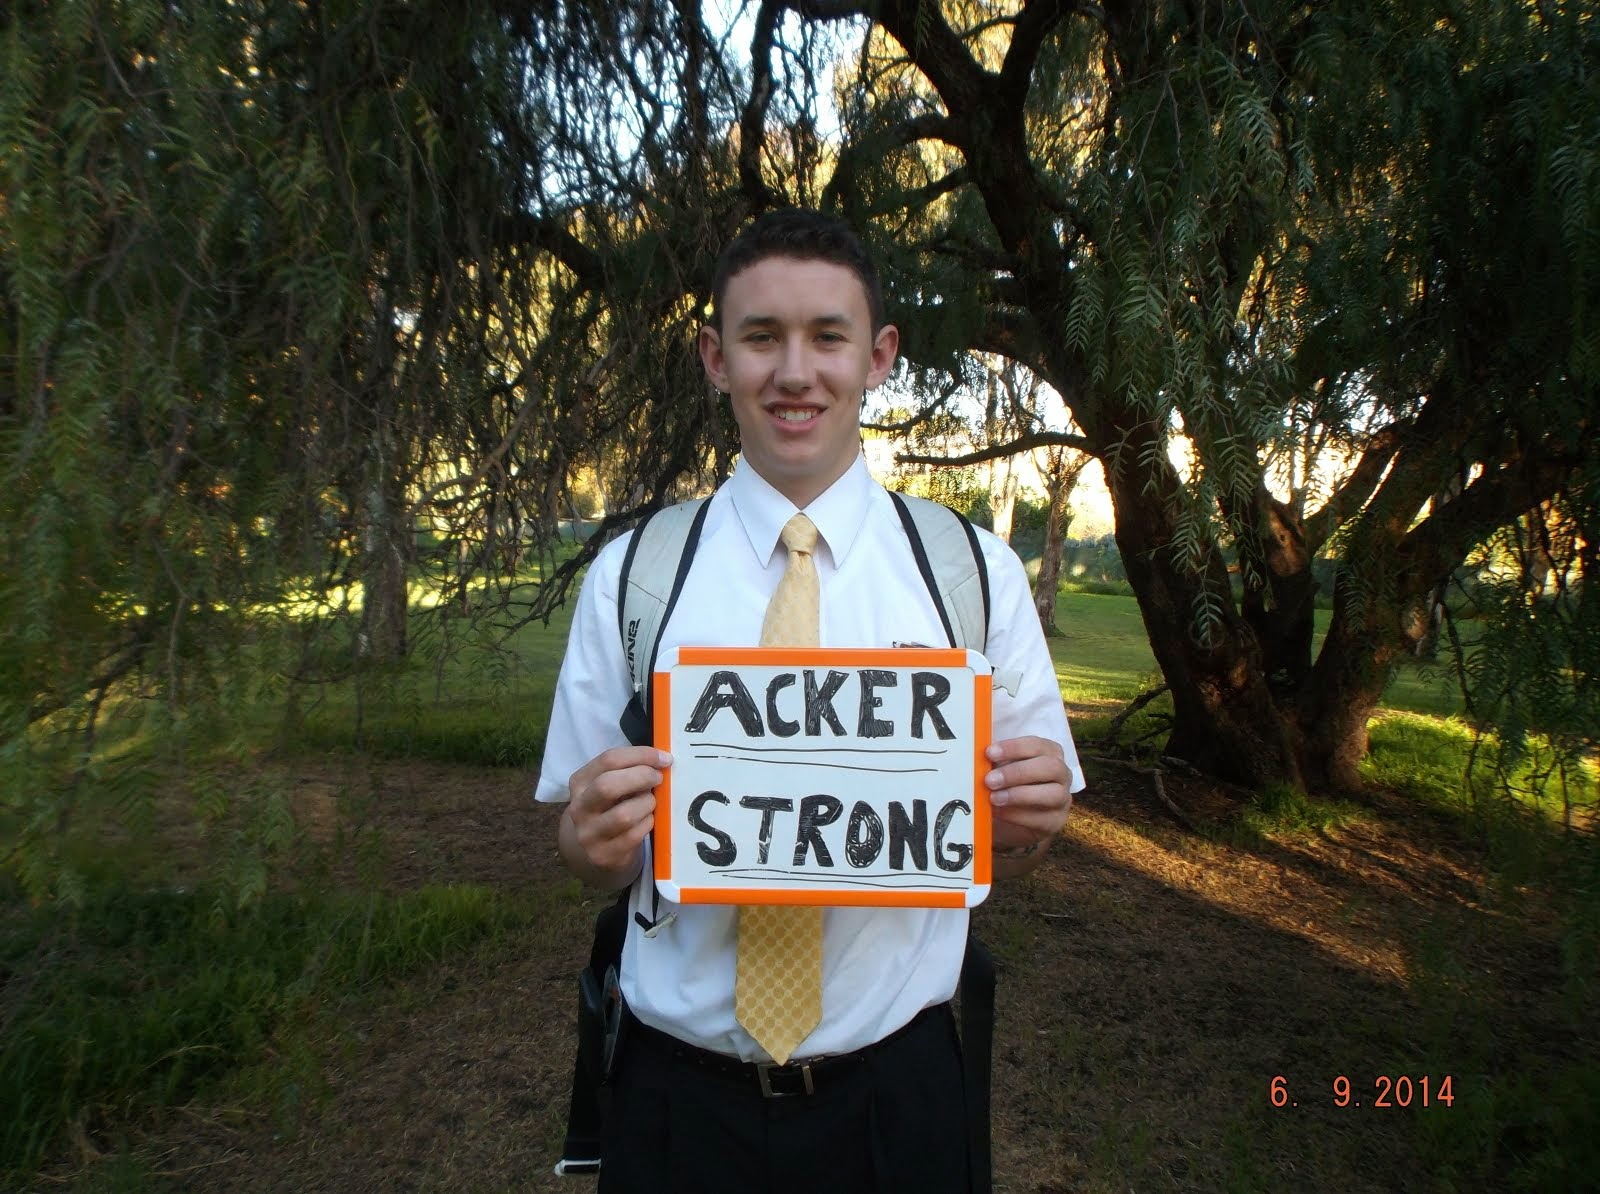 Acker Strong